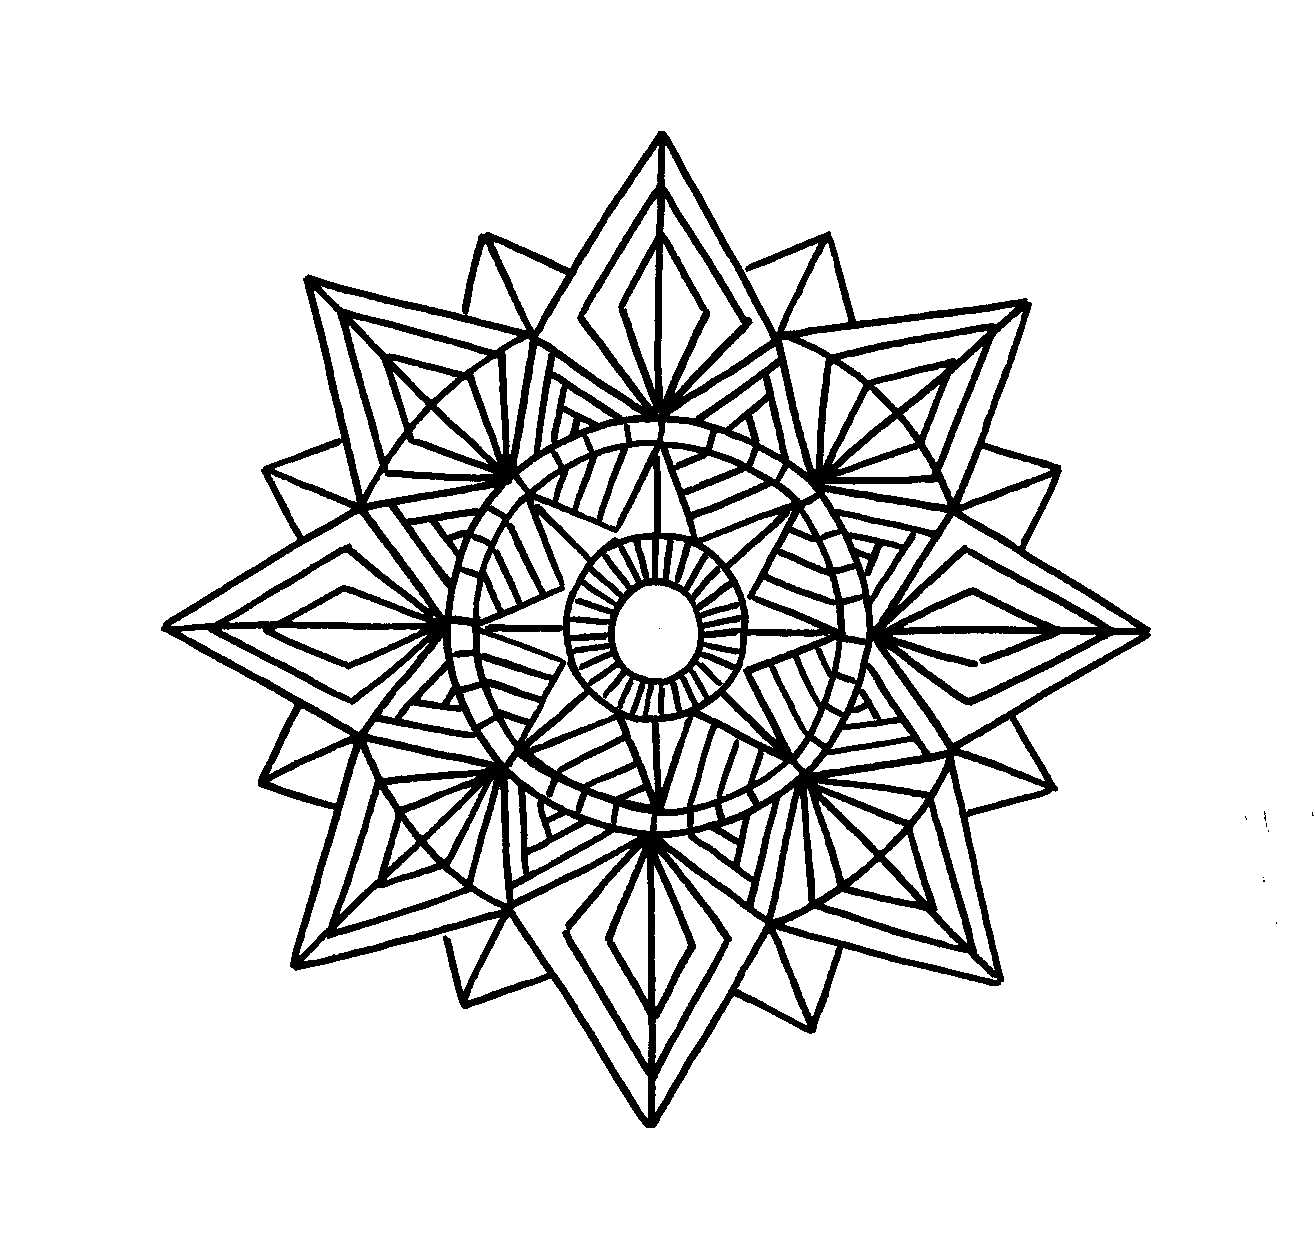 coloring book pages designs mehndi coloring page henna adult printable pdf original design designs coloring pages book